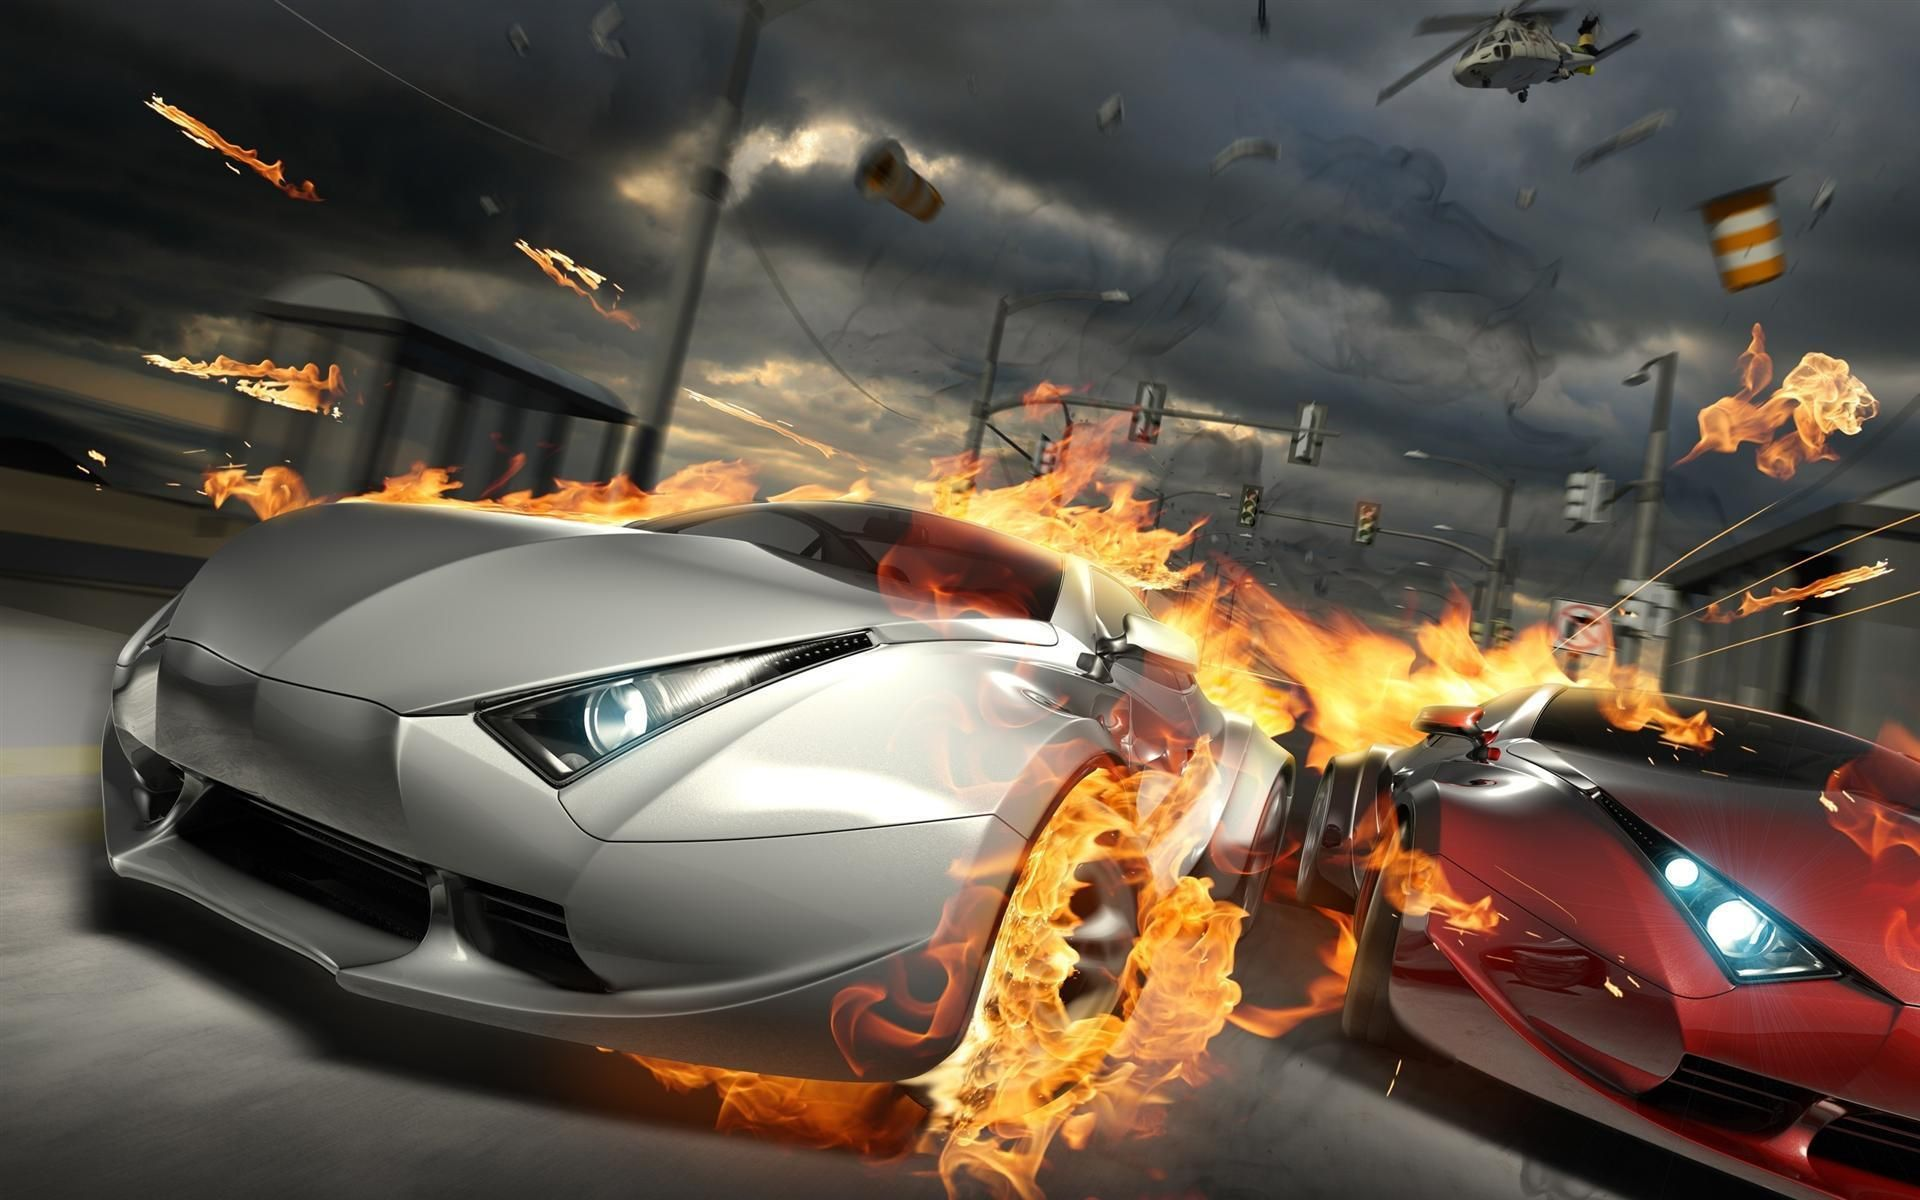 Best 3d Cars Hd Free Desktop Wallpapers Kk Cars Cool Cars